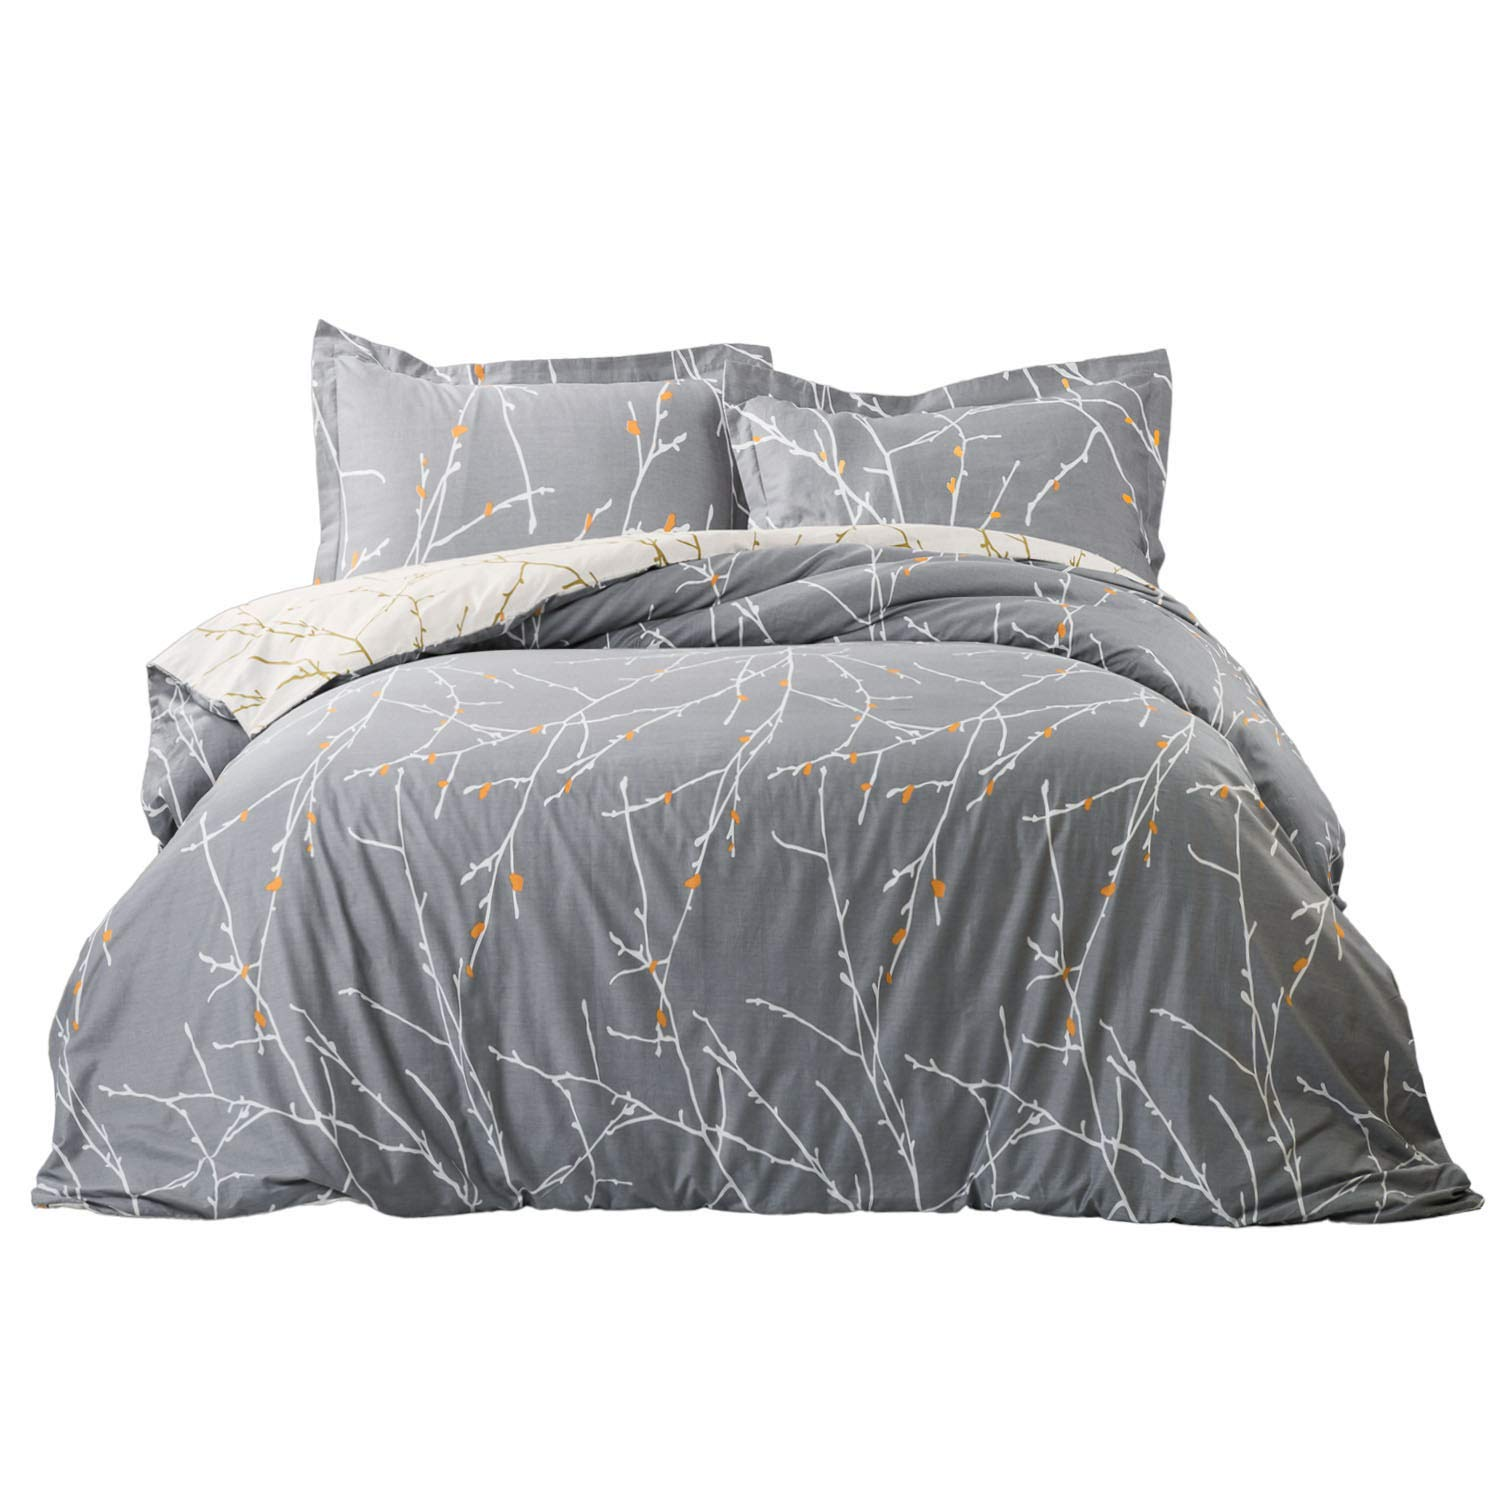 Bedsure 100% Cotton Duvet Cover Set Full Queen Size Grey/Ivory Reversible Comforter Cover Tree Branch Bedding Sets (1 Duvet Cover + 2 Pillow Shams) by Bedsure (Image #1)